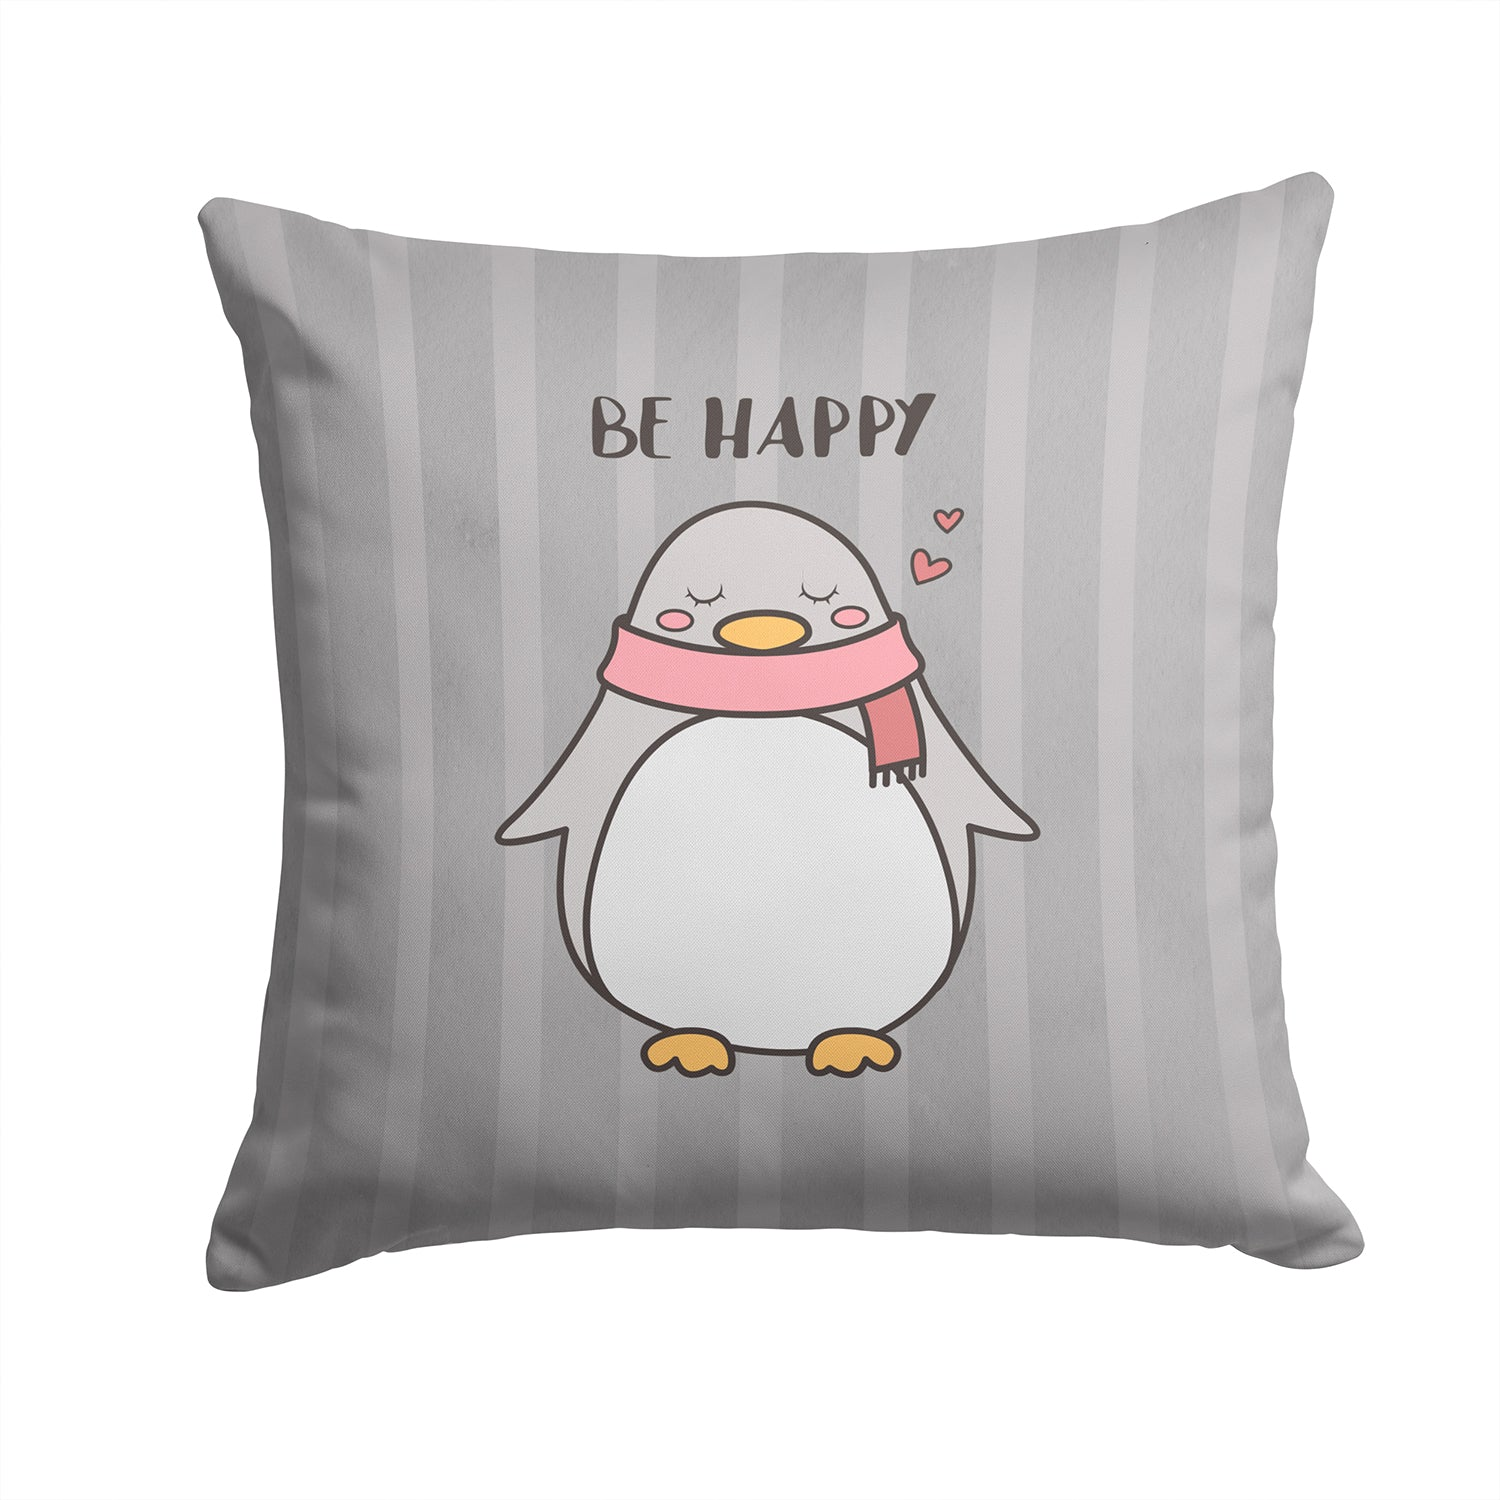 Nursery Be Happy Penquin Fabric Decorative Pillow BB7478PW1414 by Caroline's Treasures